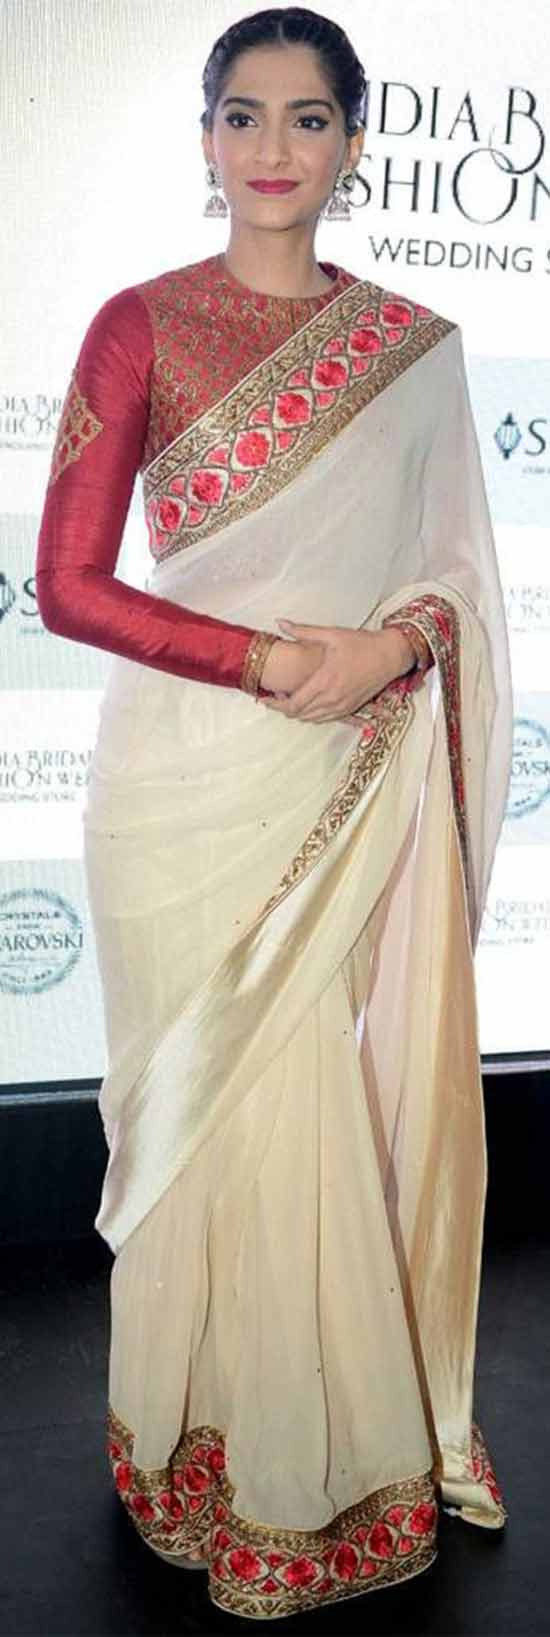 Sonam-Kapoor-goes-traditional-in-a-red-and-white-saree